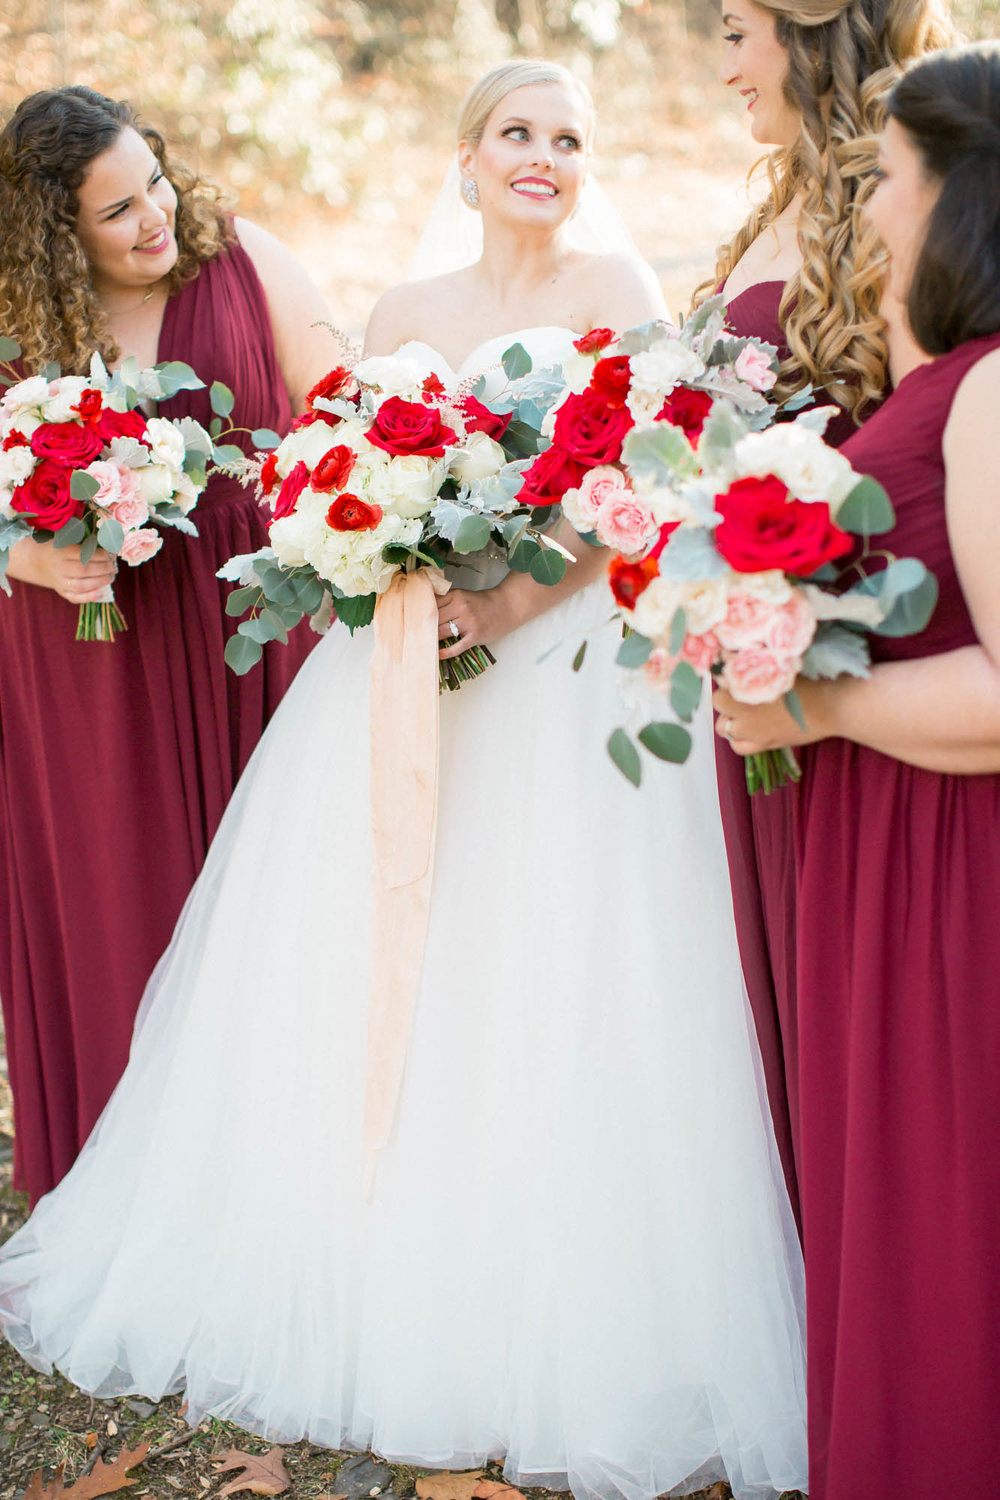 Bridesmaids and bride red and white bouquets